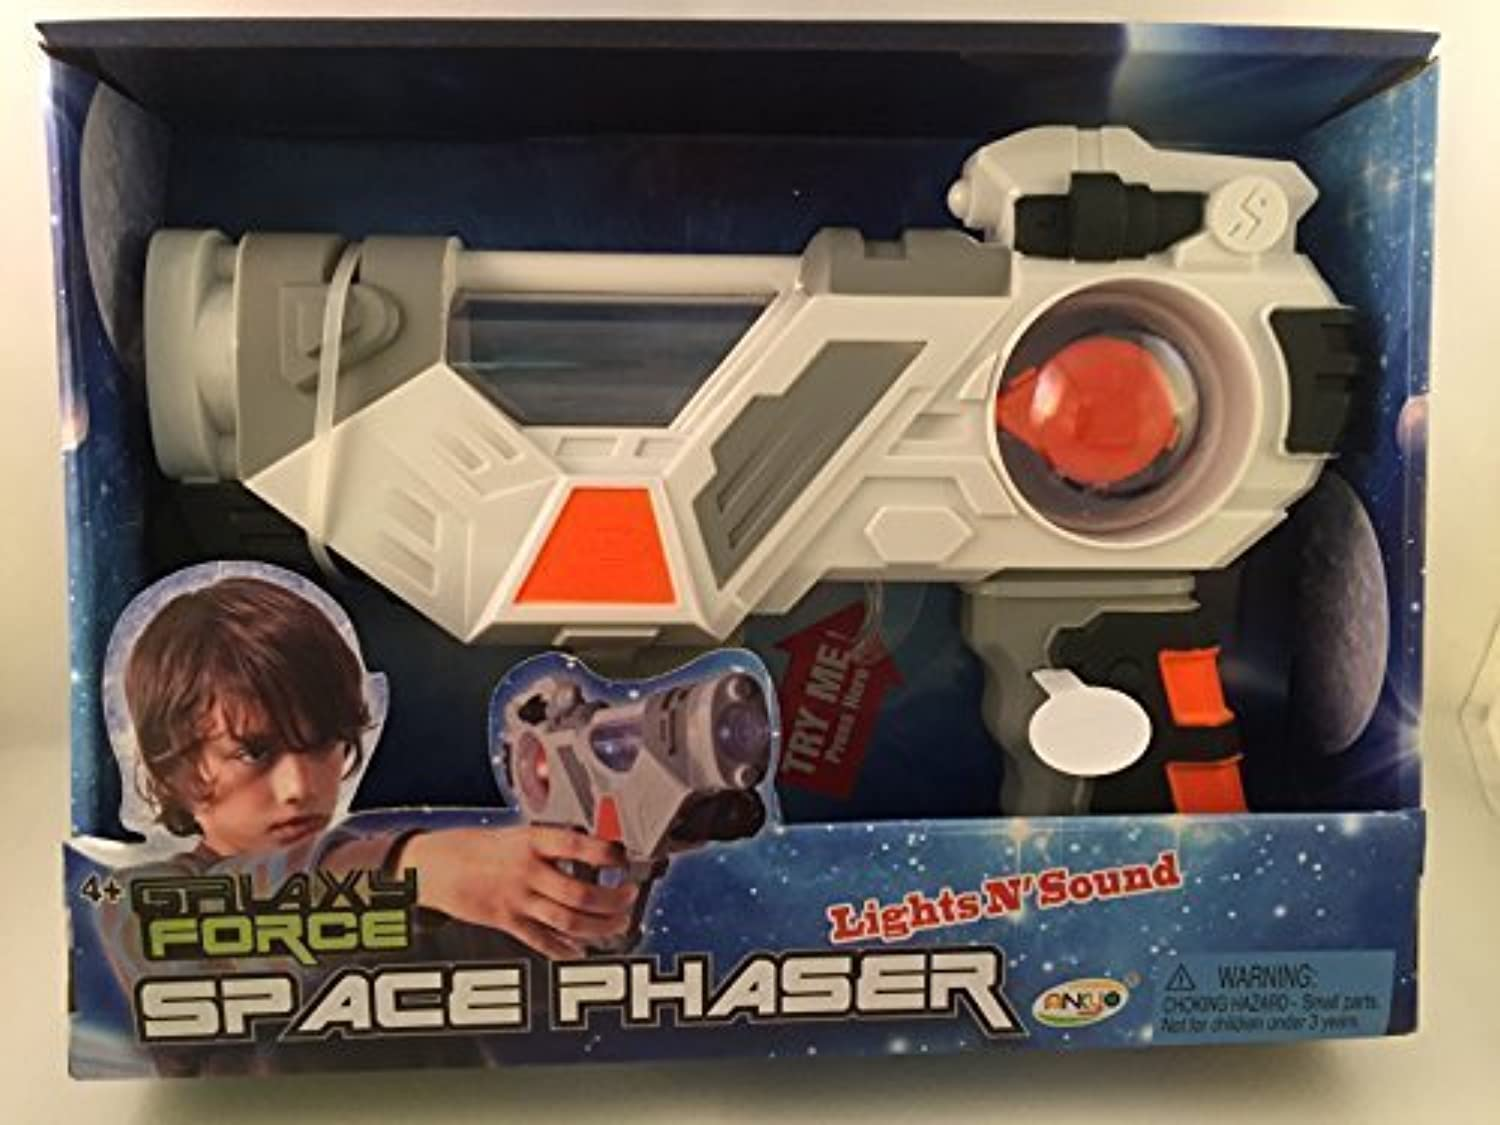 Galaxy Force Lights N' Sound Space Phaser by Ankyo